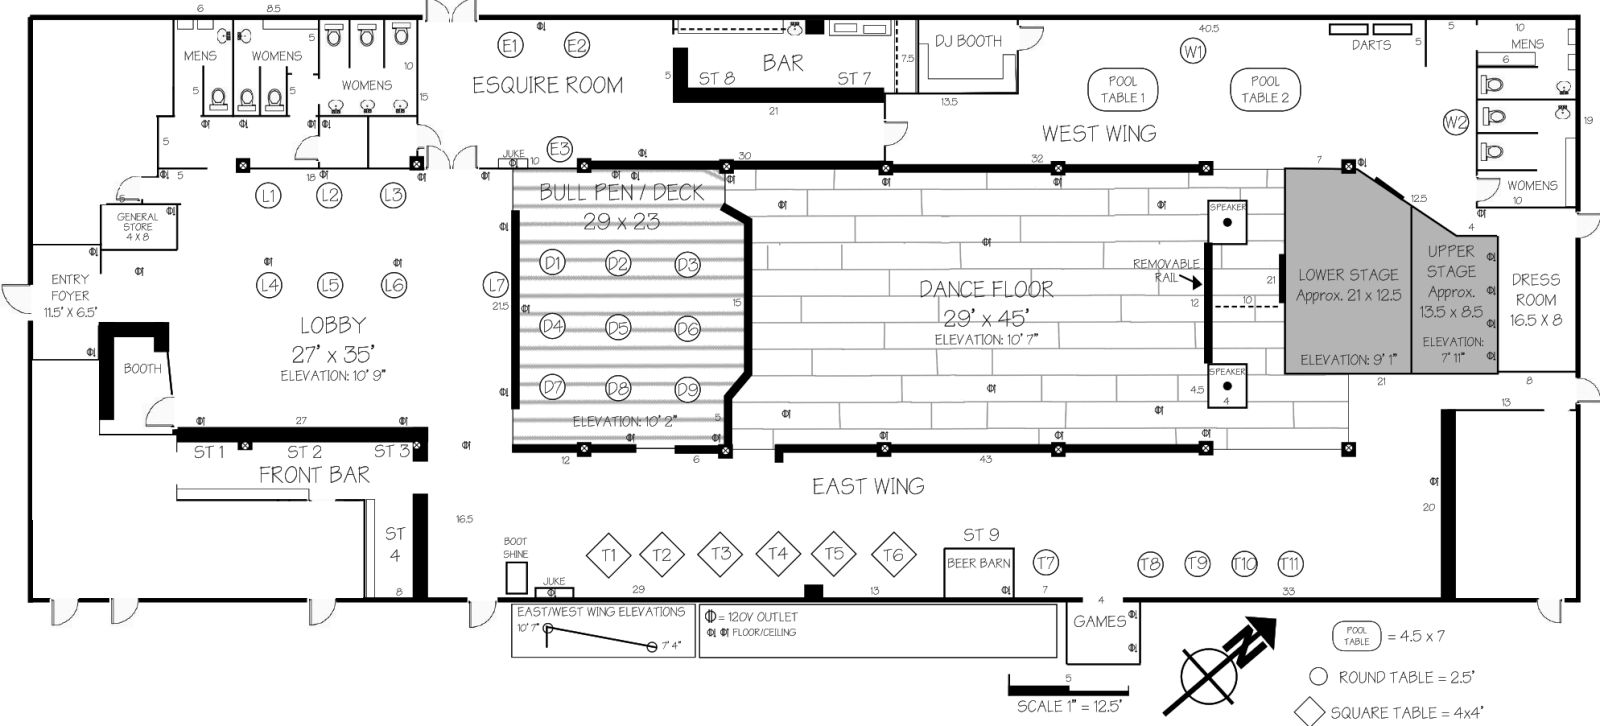 Tables on schematic wiring for house